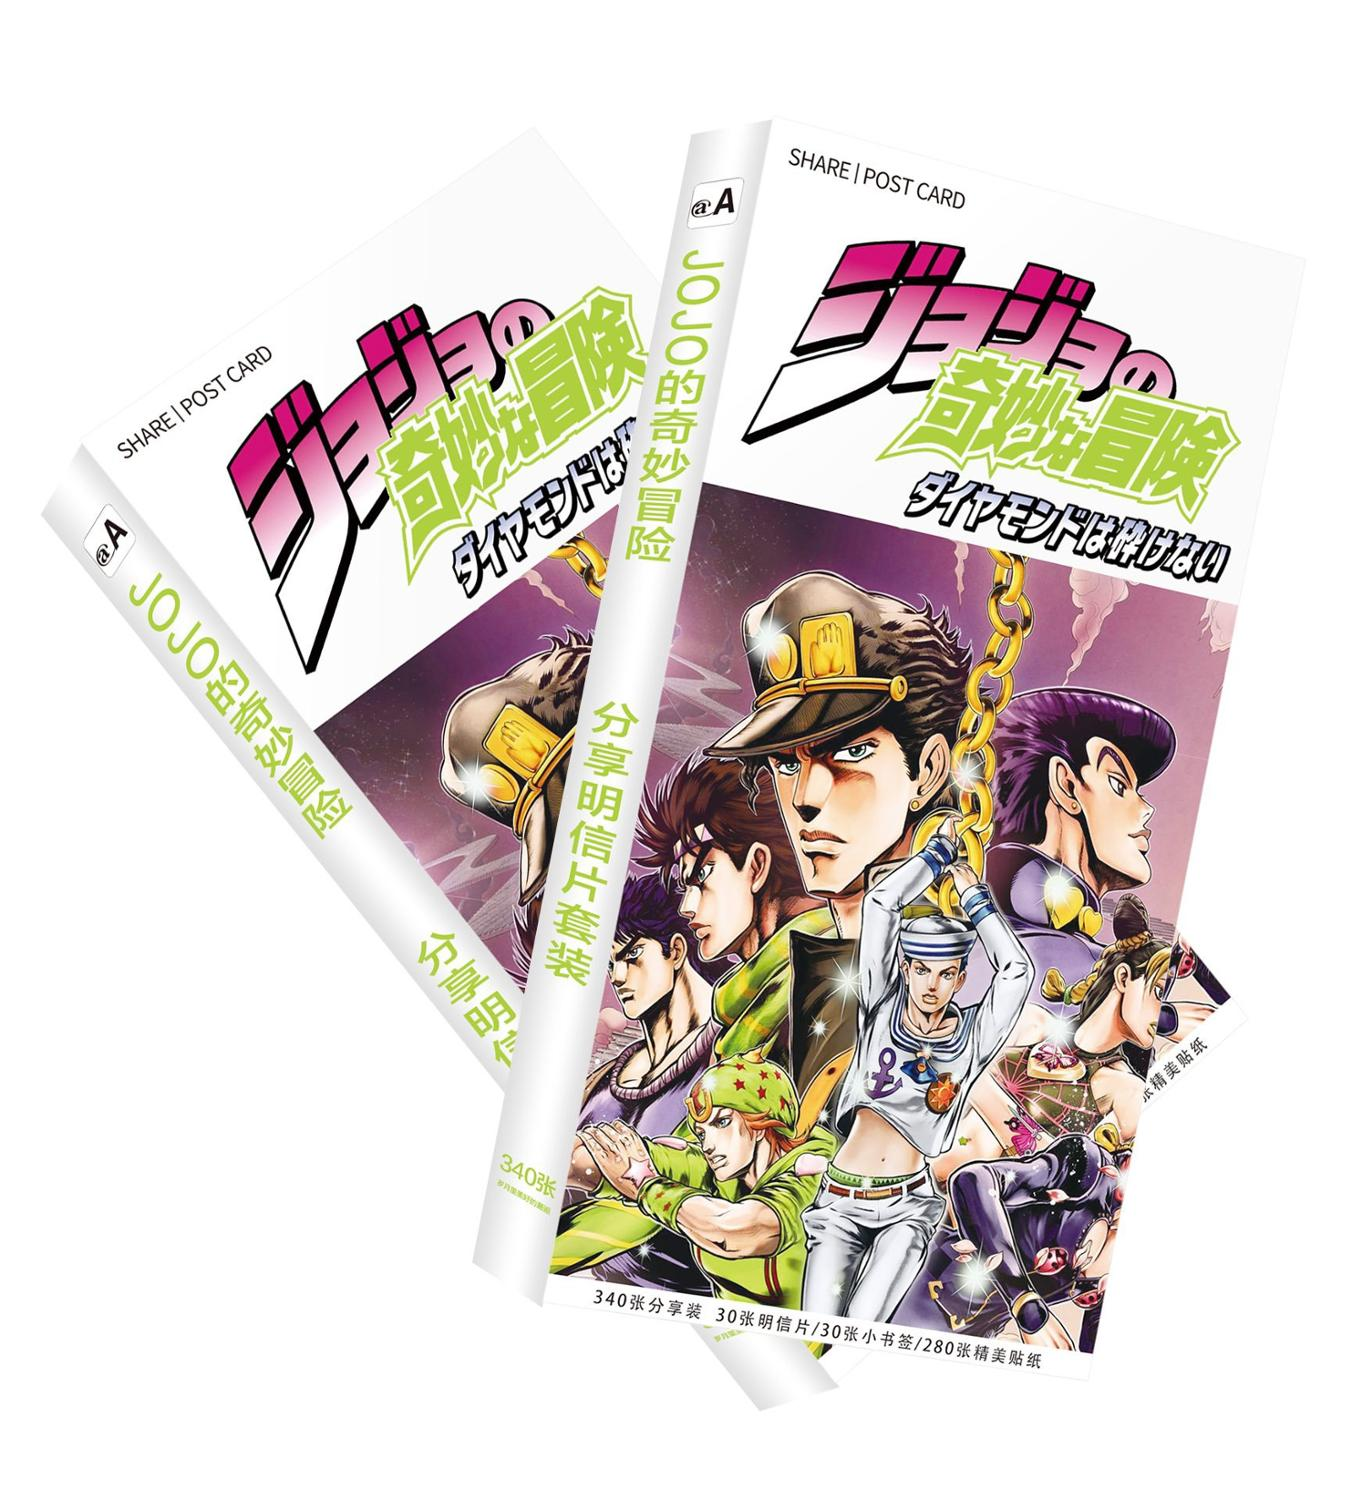 340Pcs/Set Anime JoJo's Bizarre Adventure Postcard Cartoon Figure Greeting Card Message Card Gift Stationery